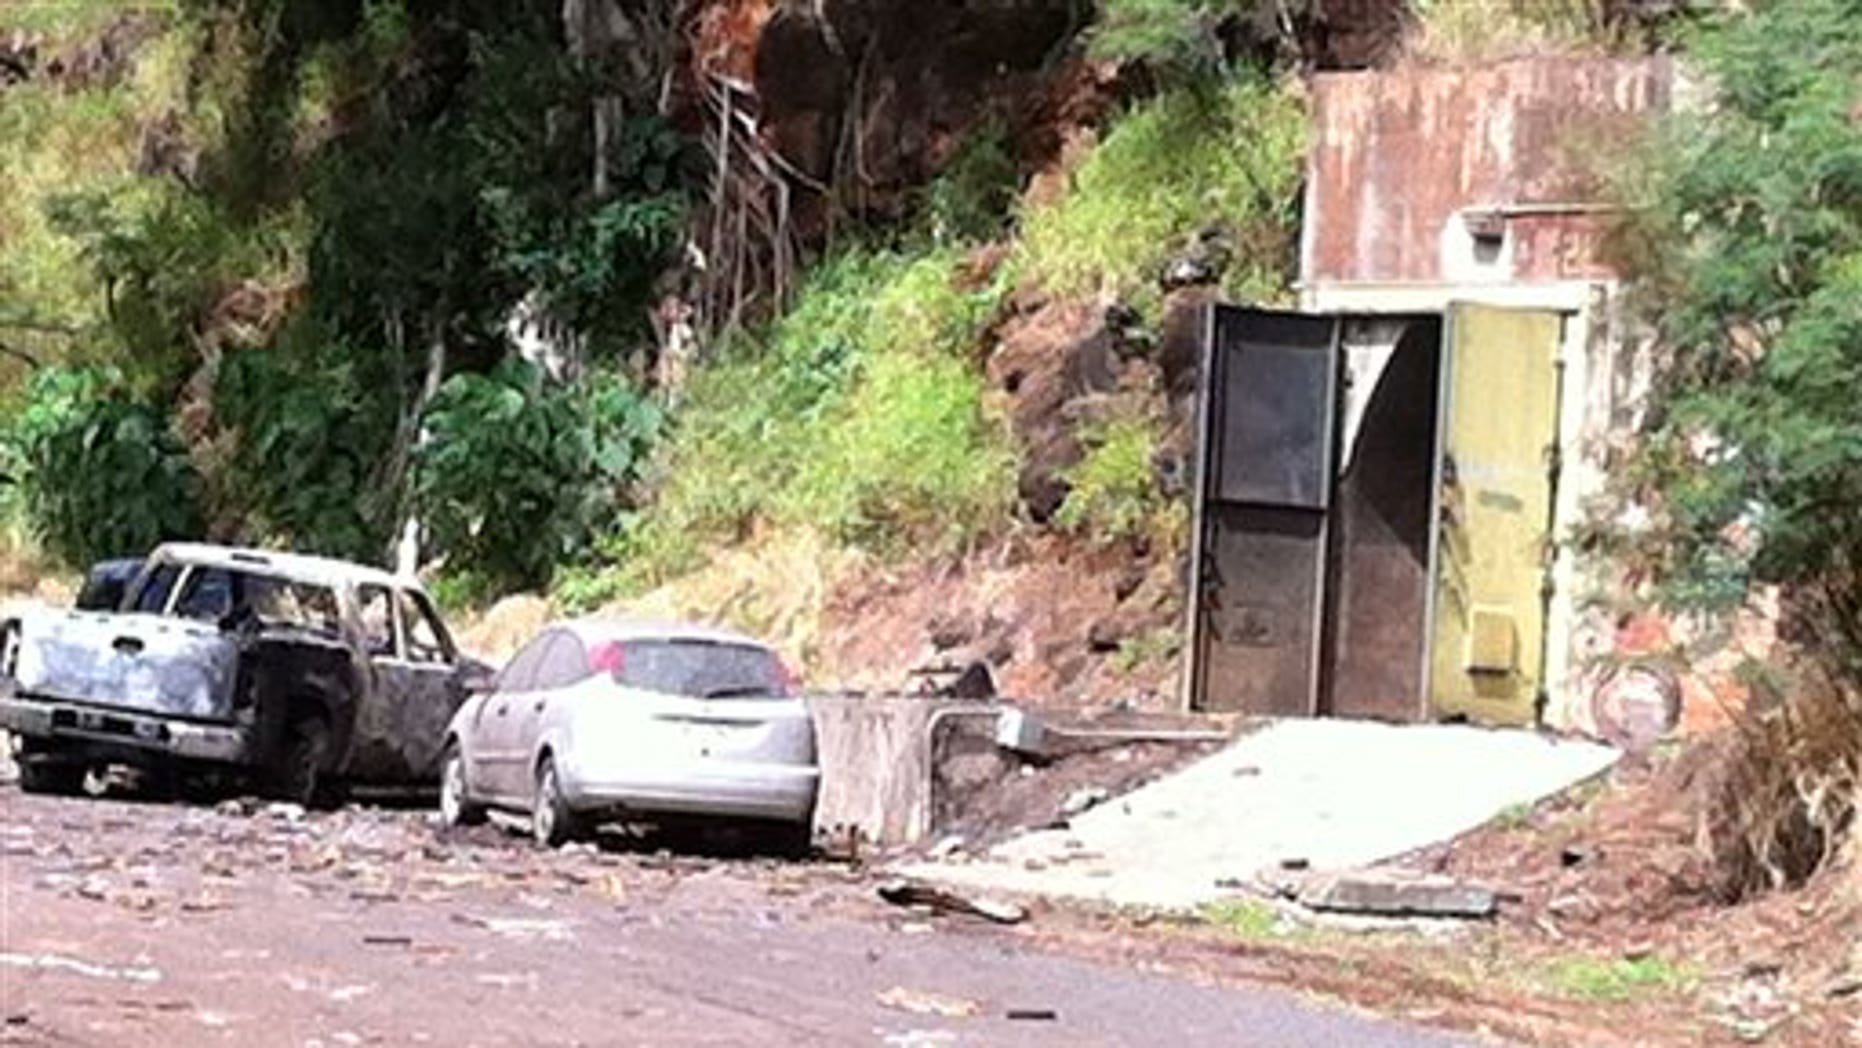 April 8: This image provided by KITV shows the entrance to the bunker where fireworks were stored at Waikele Business Center in Waipahu, Hawaii. At least two men were killed, injuring two others and two are missing after the explosion. (AP/KITV)